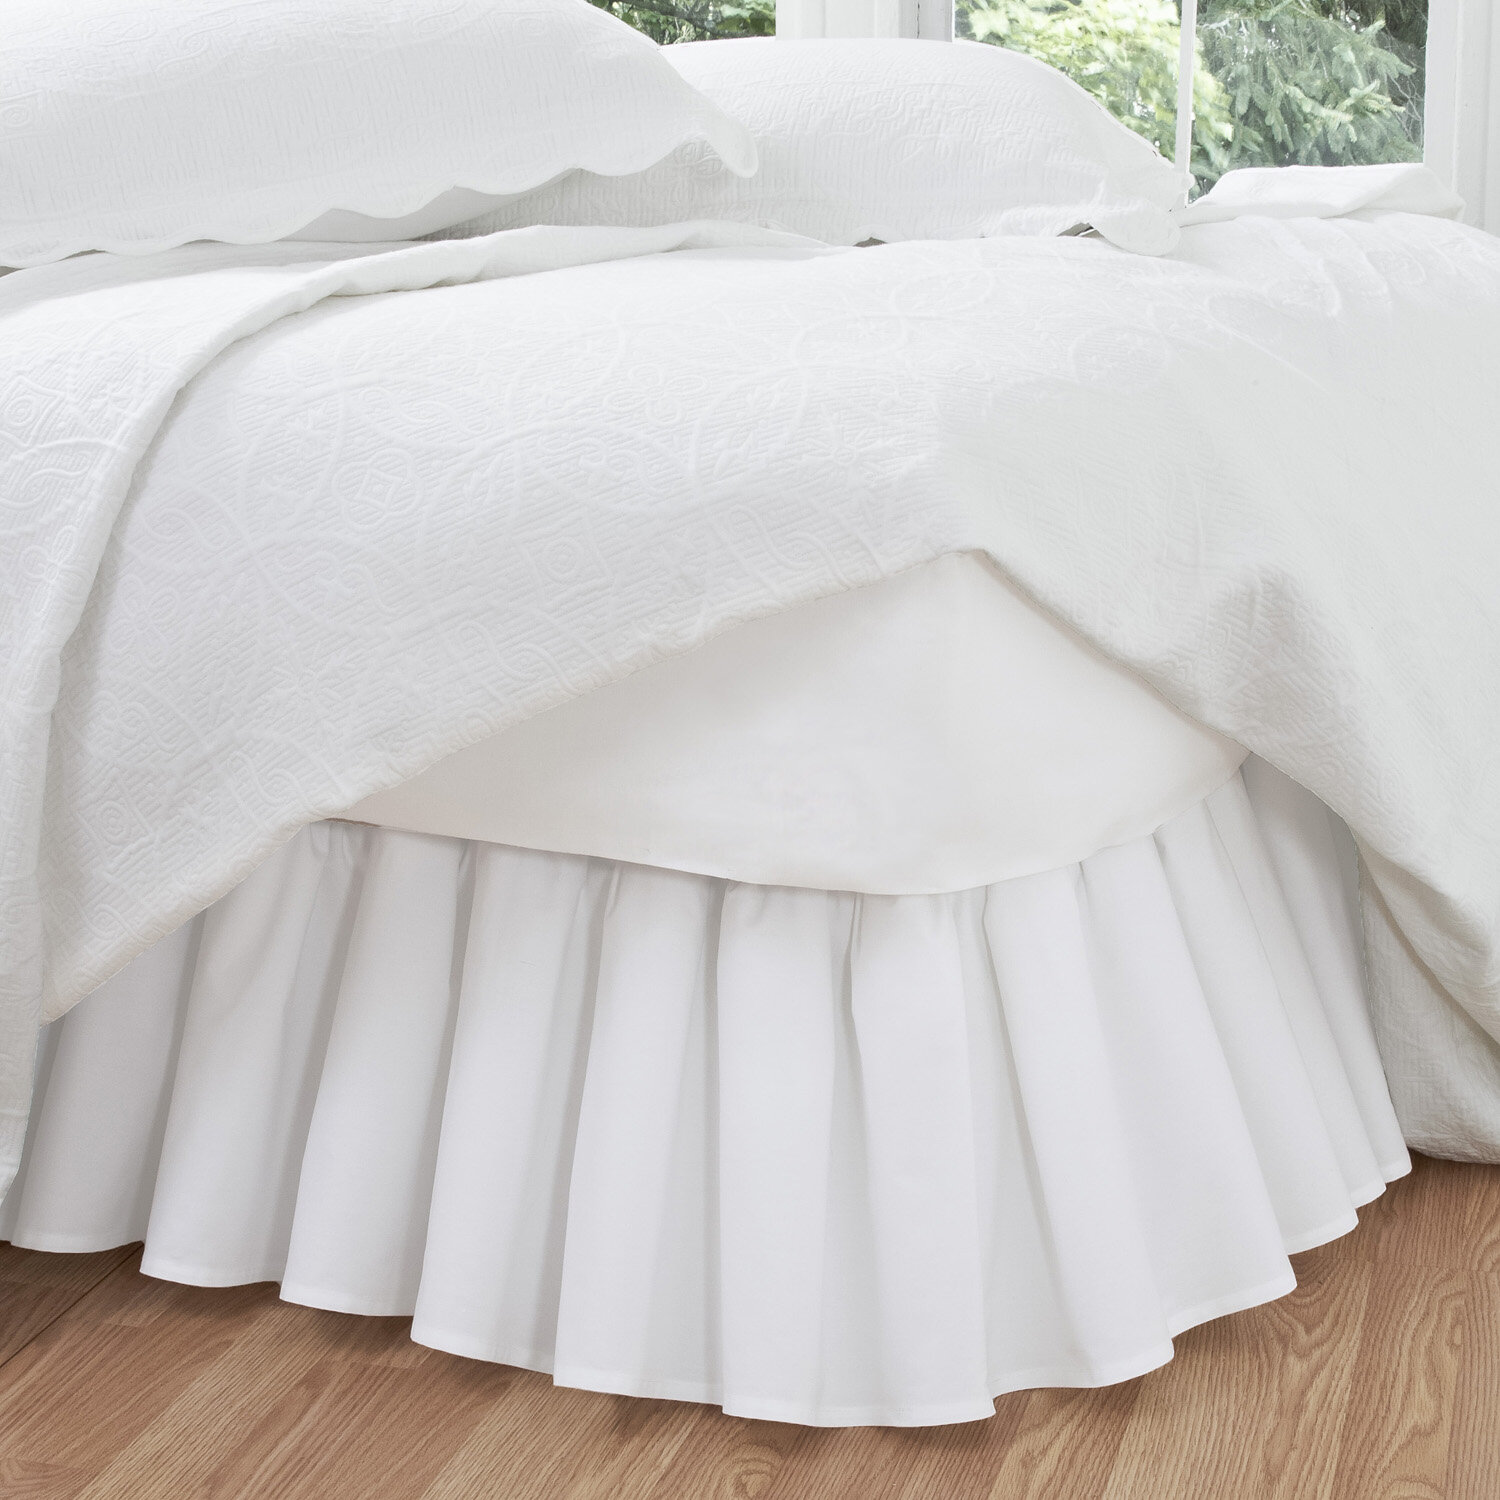 Twin Bed Skirts You Ll Love In 2021 Wayfair